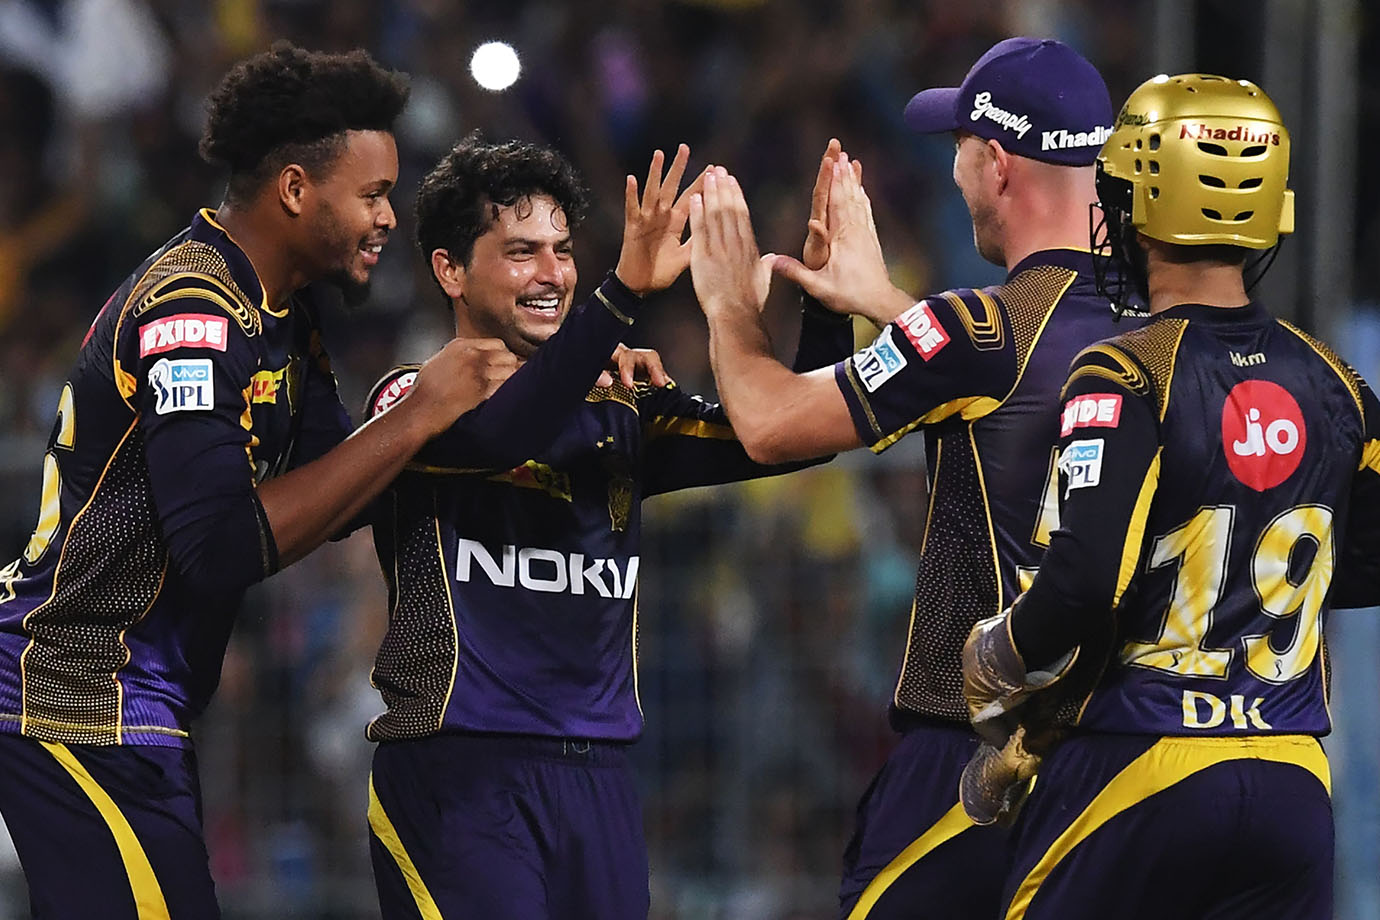 Kolkata Knight Riders' Kuldeep Yadav (2ndL)  celebrates with teammates after taking the wicket of Ra